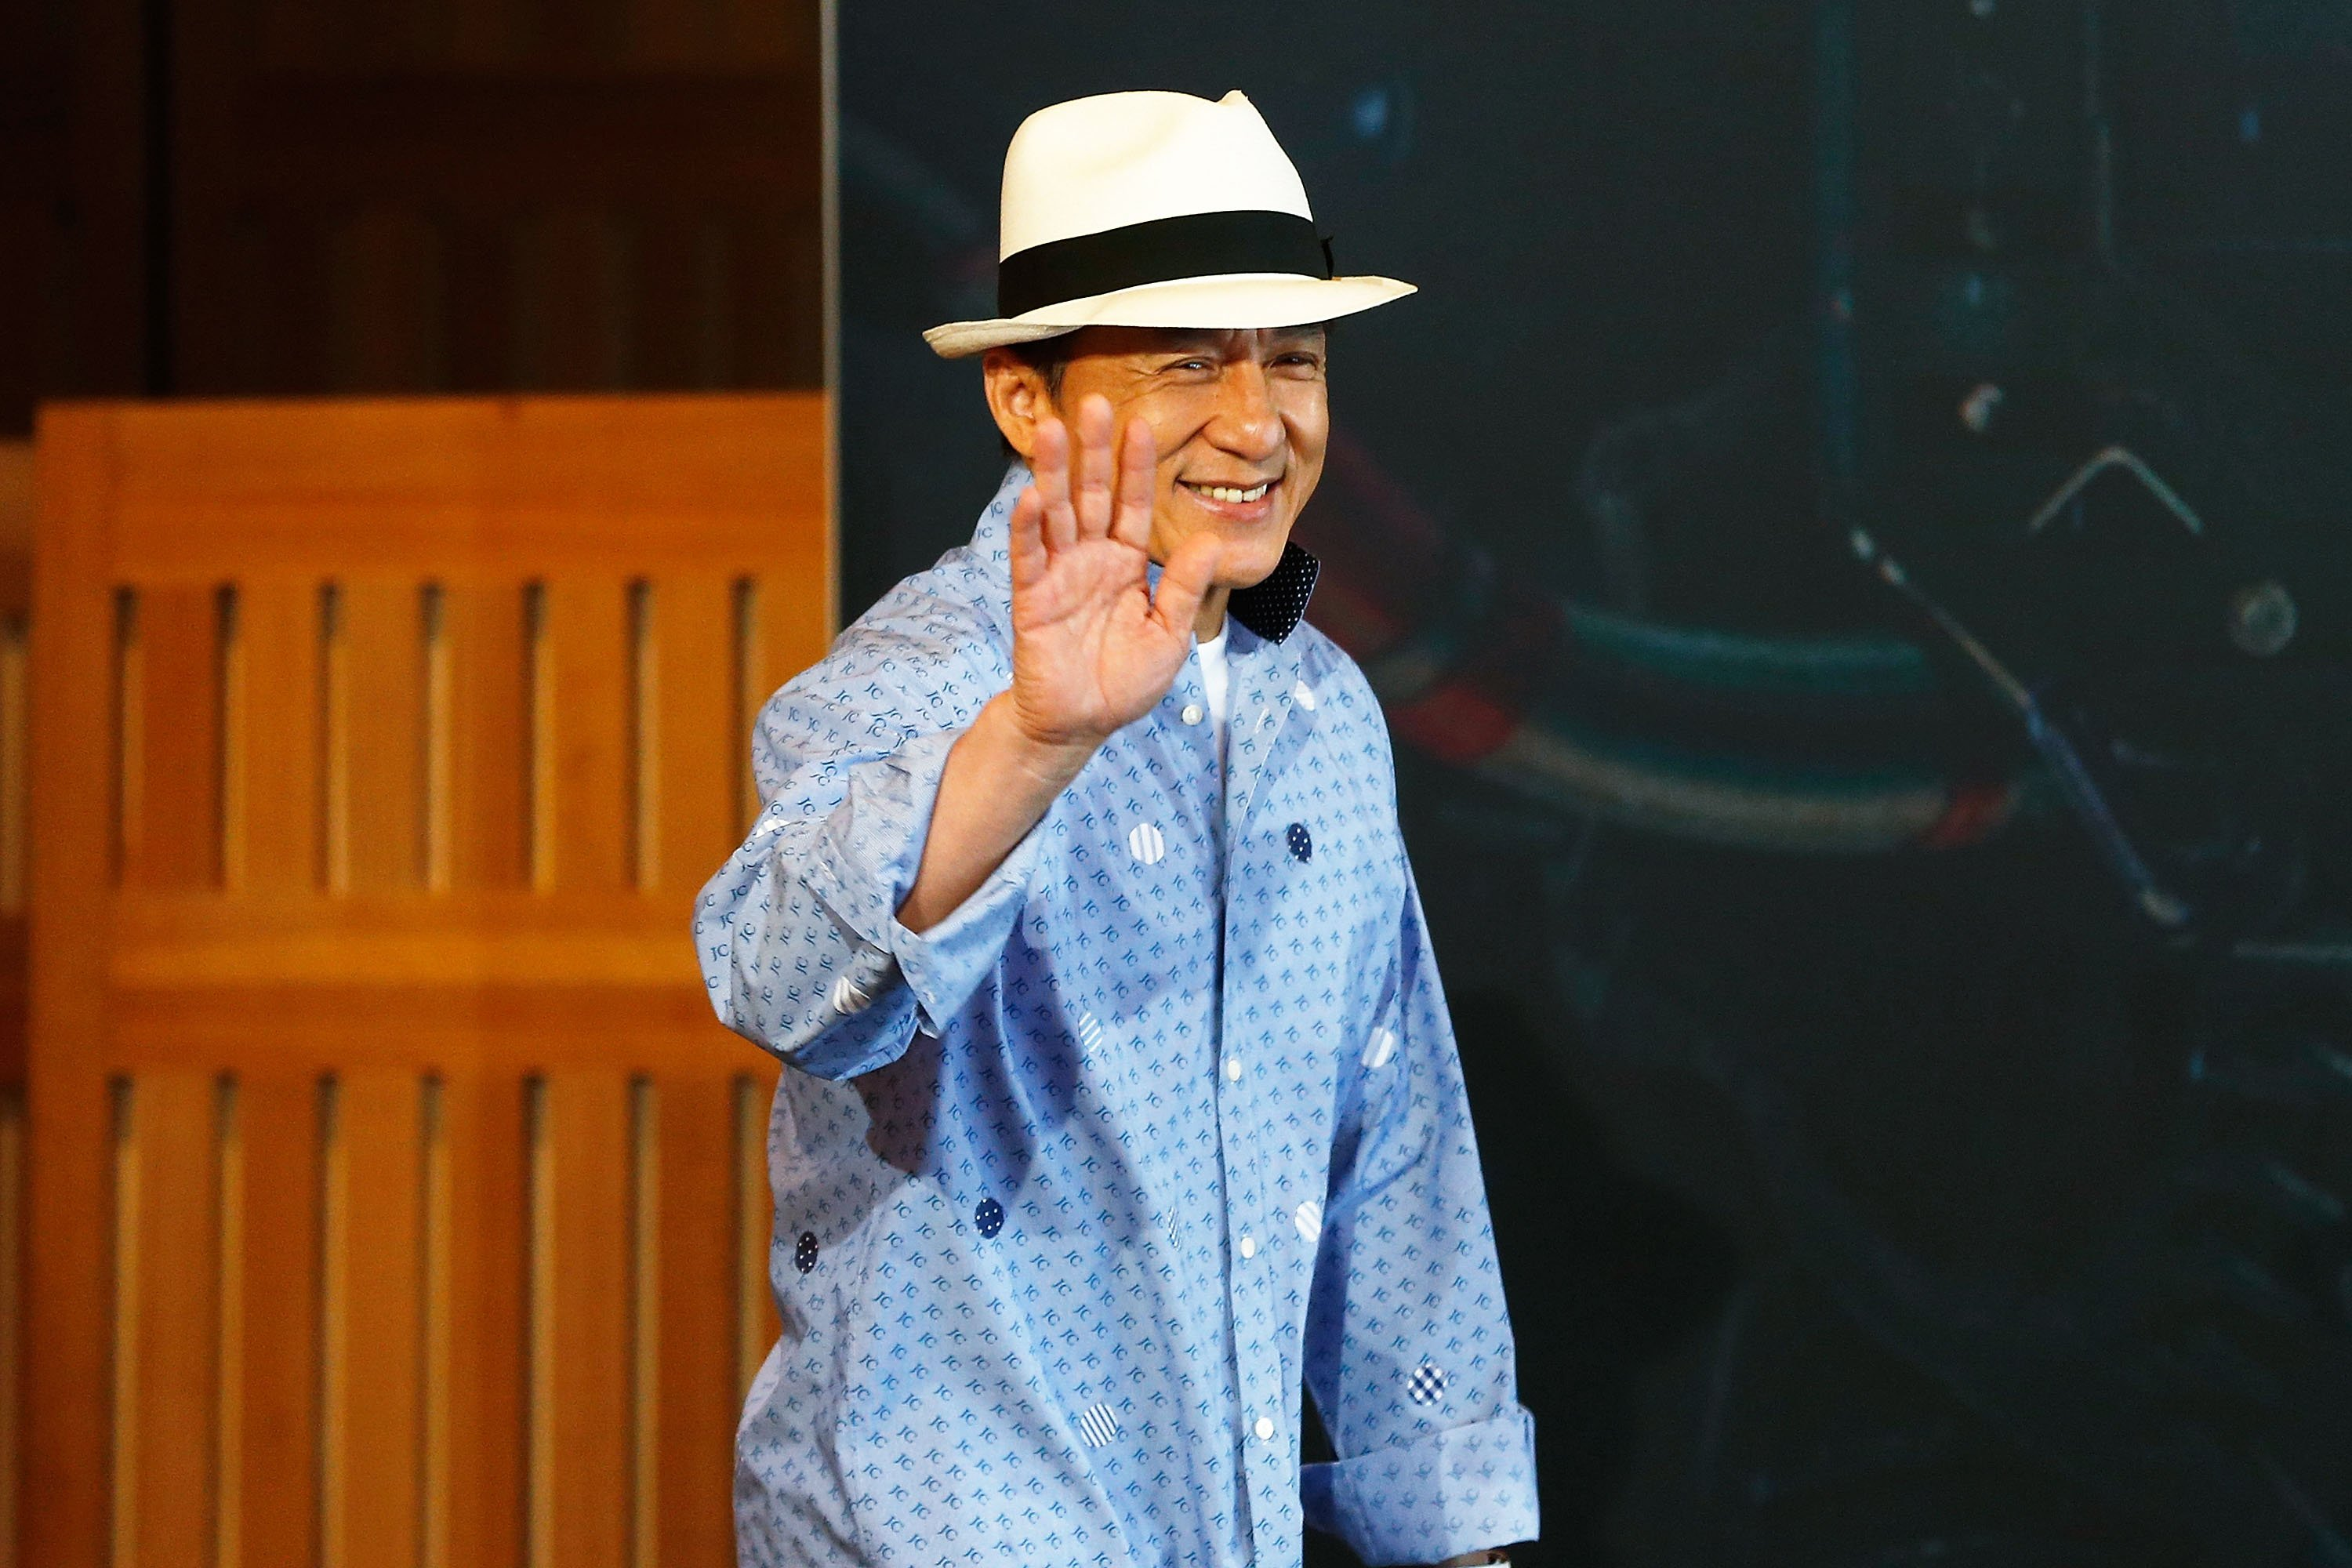 Jackie Chan Arrives At A Press Conference Free Mobile Dowload Hd Images